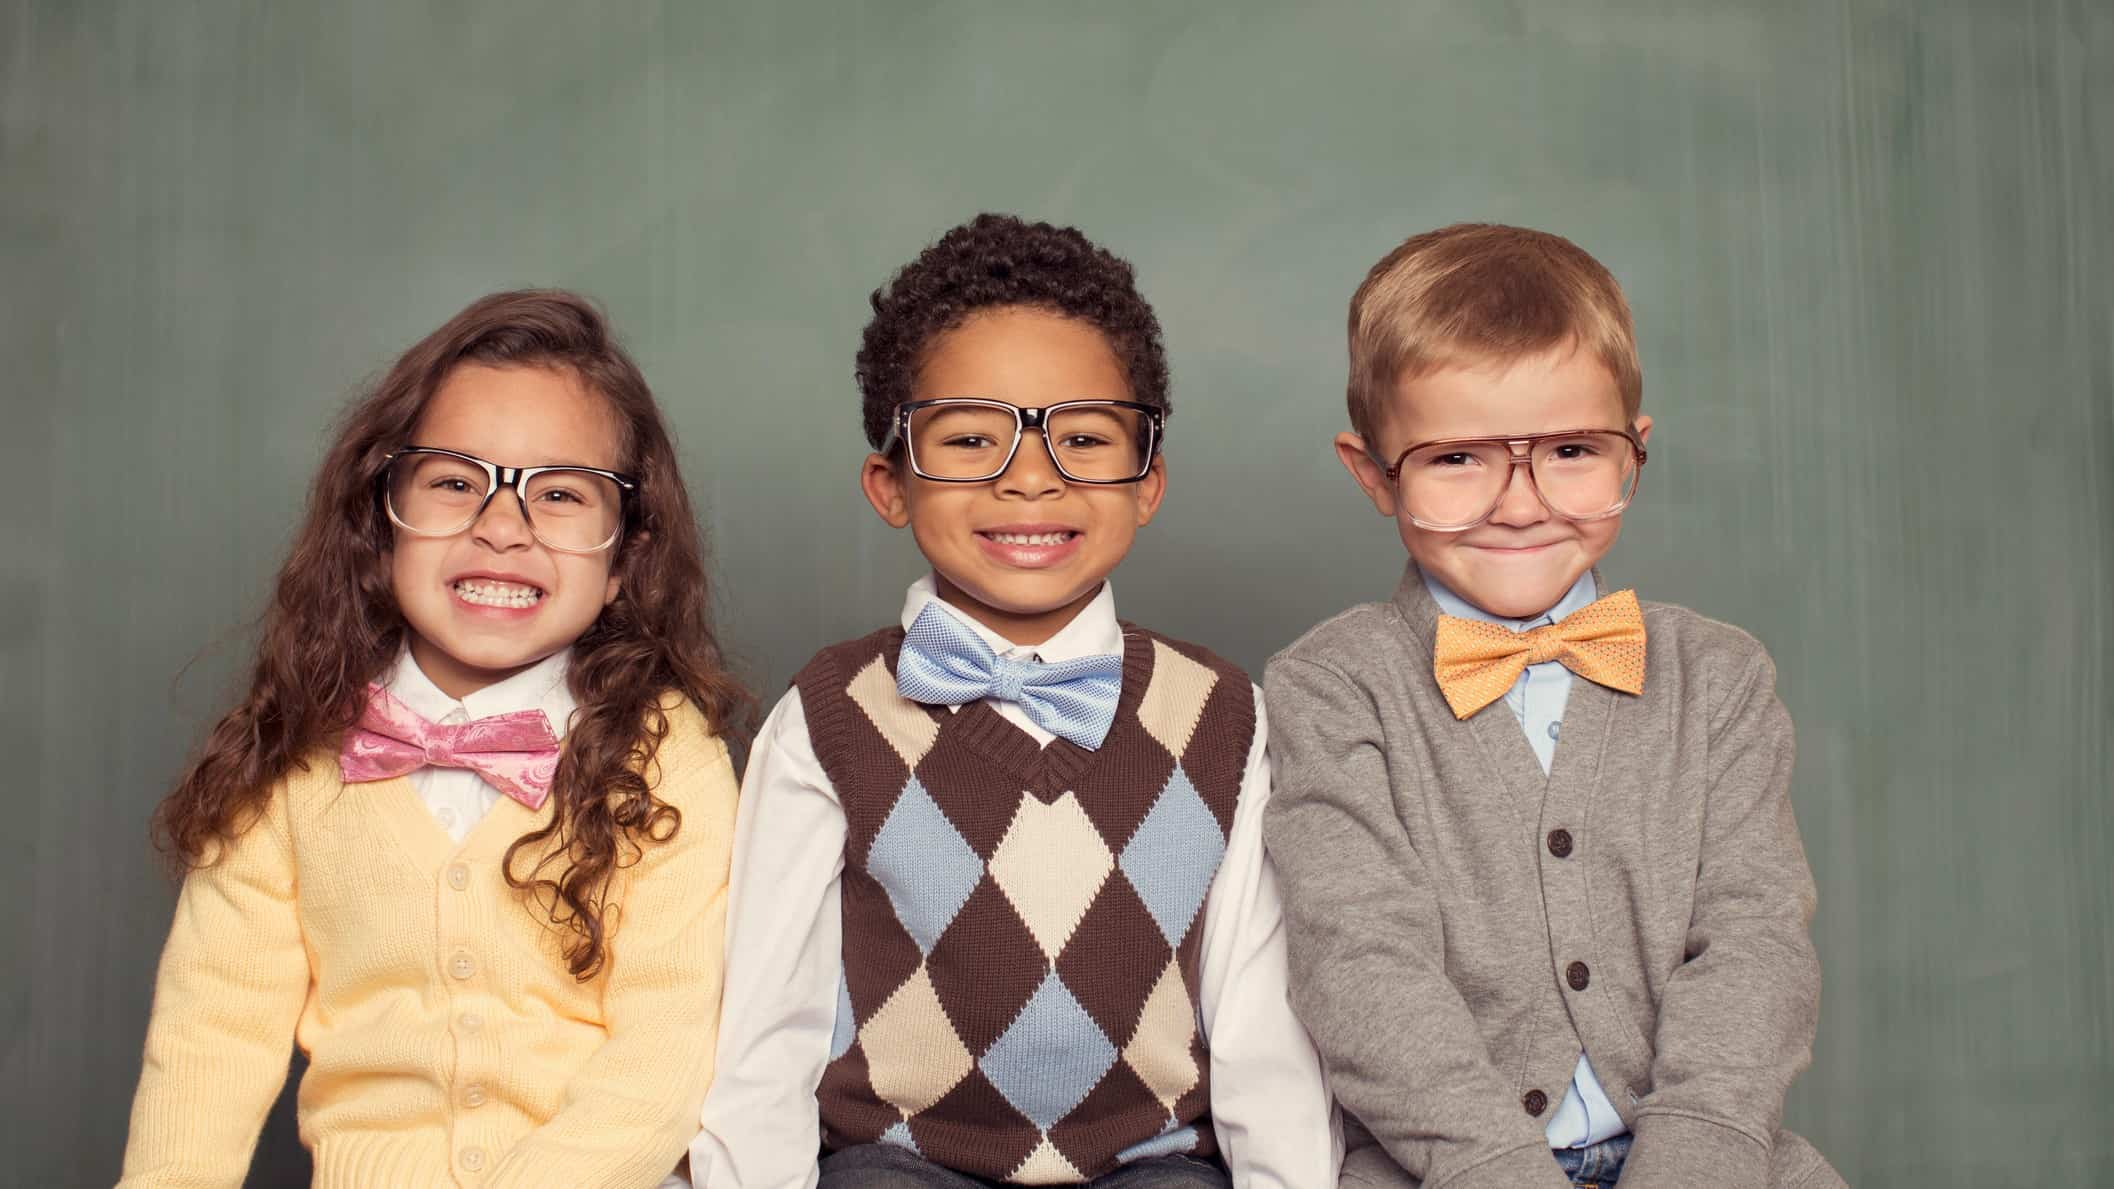 a group of smart looking kids, wearing formal clothes and all with spectacles, sit in a line and smile charmingly.